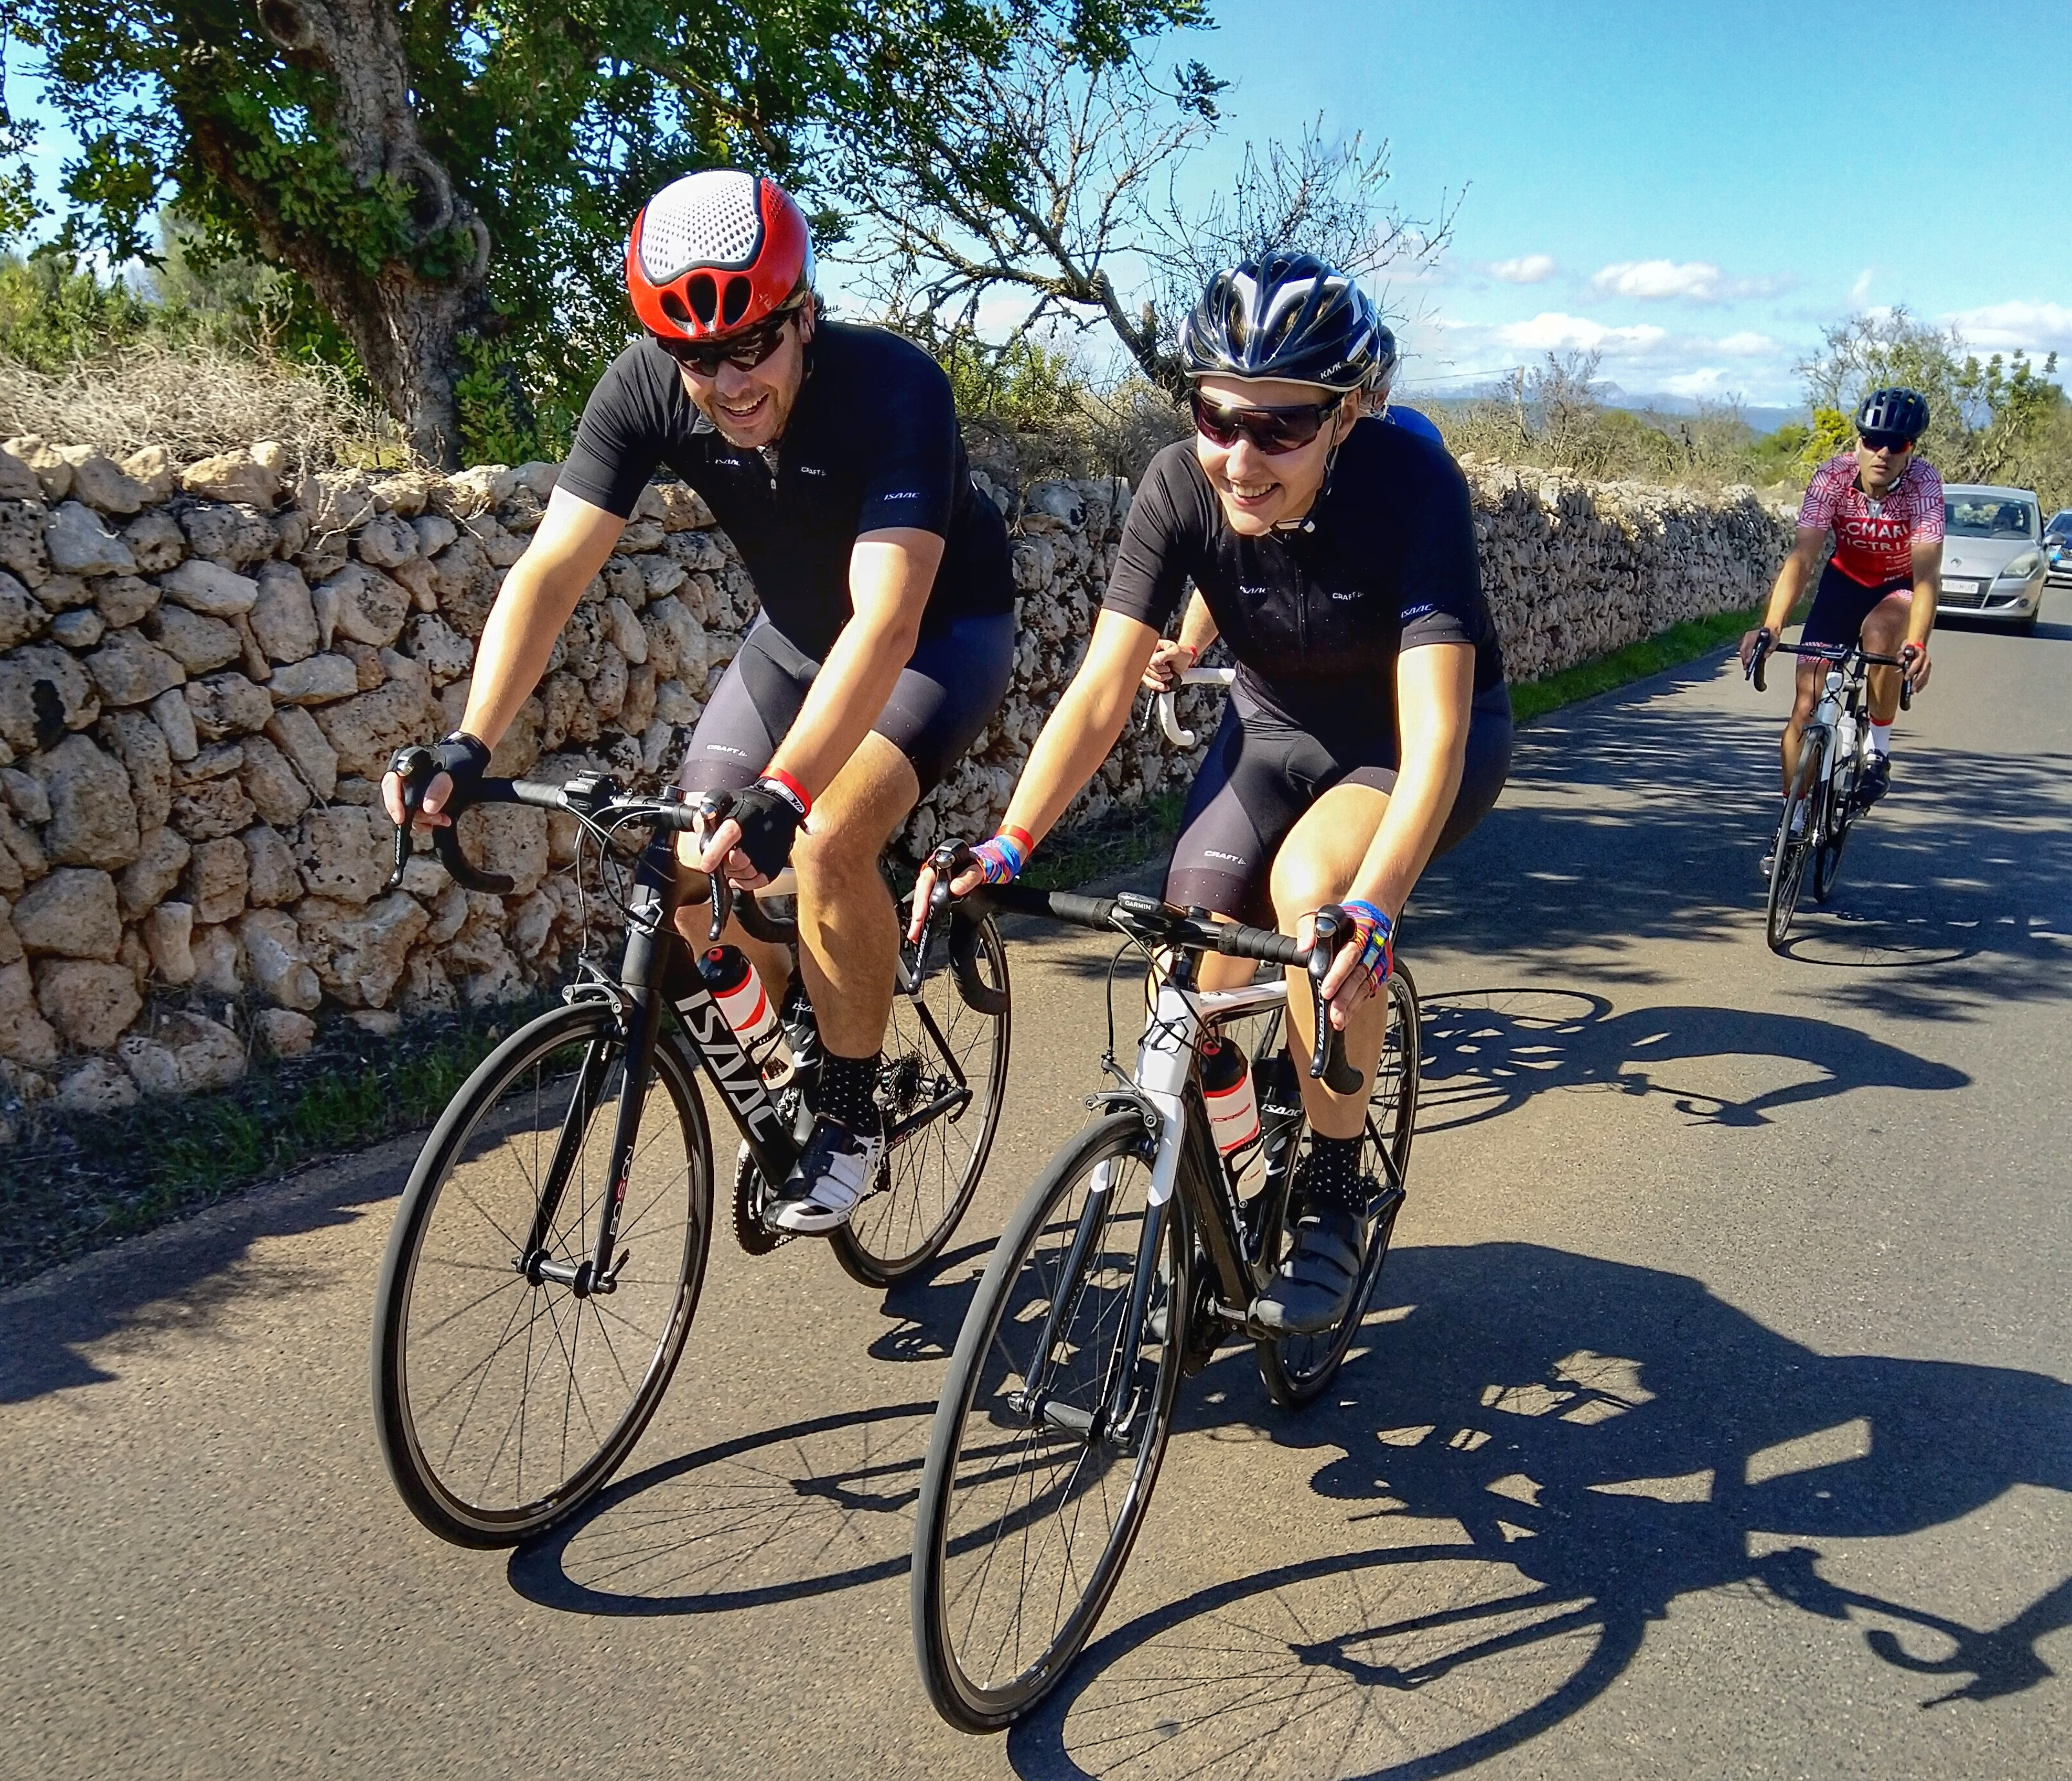 Dream cycling holiday in Majorca becomes a reality for Laura and Sam